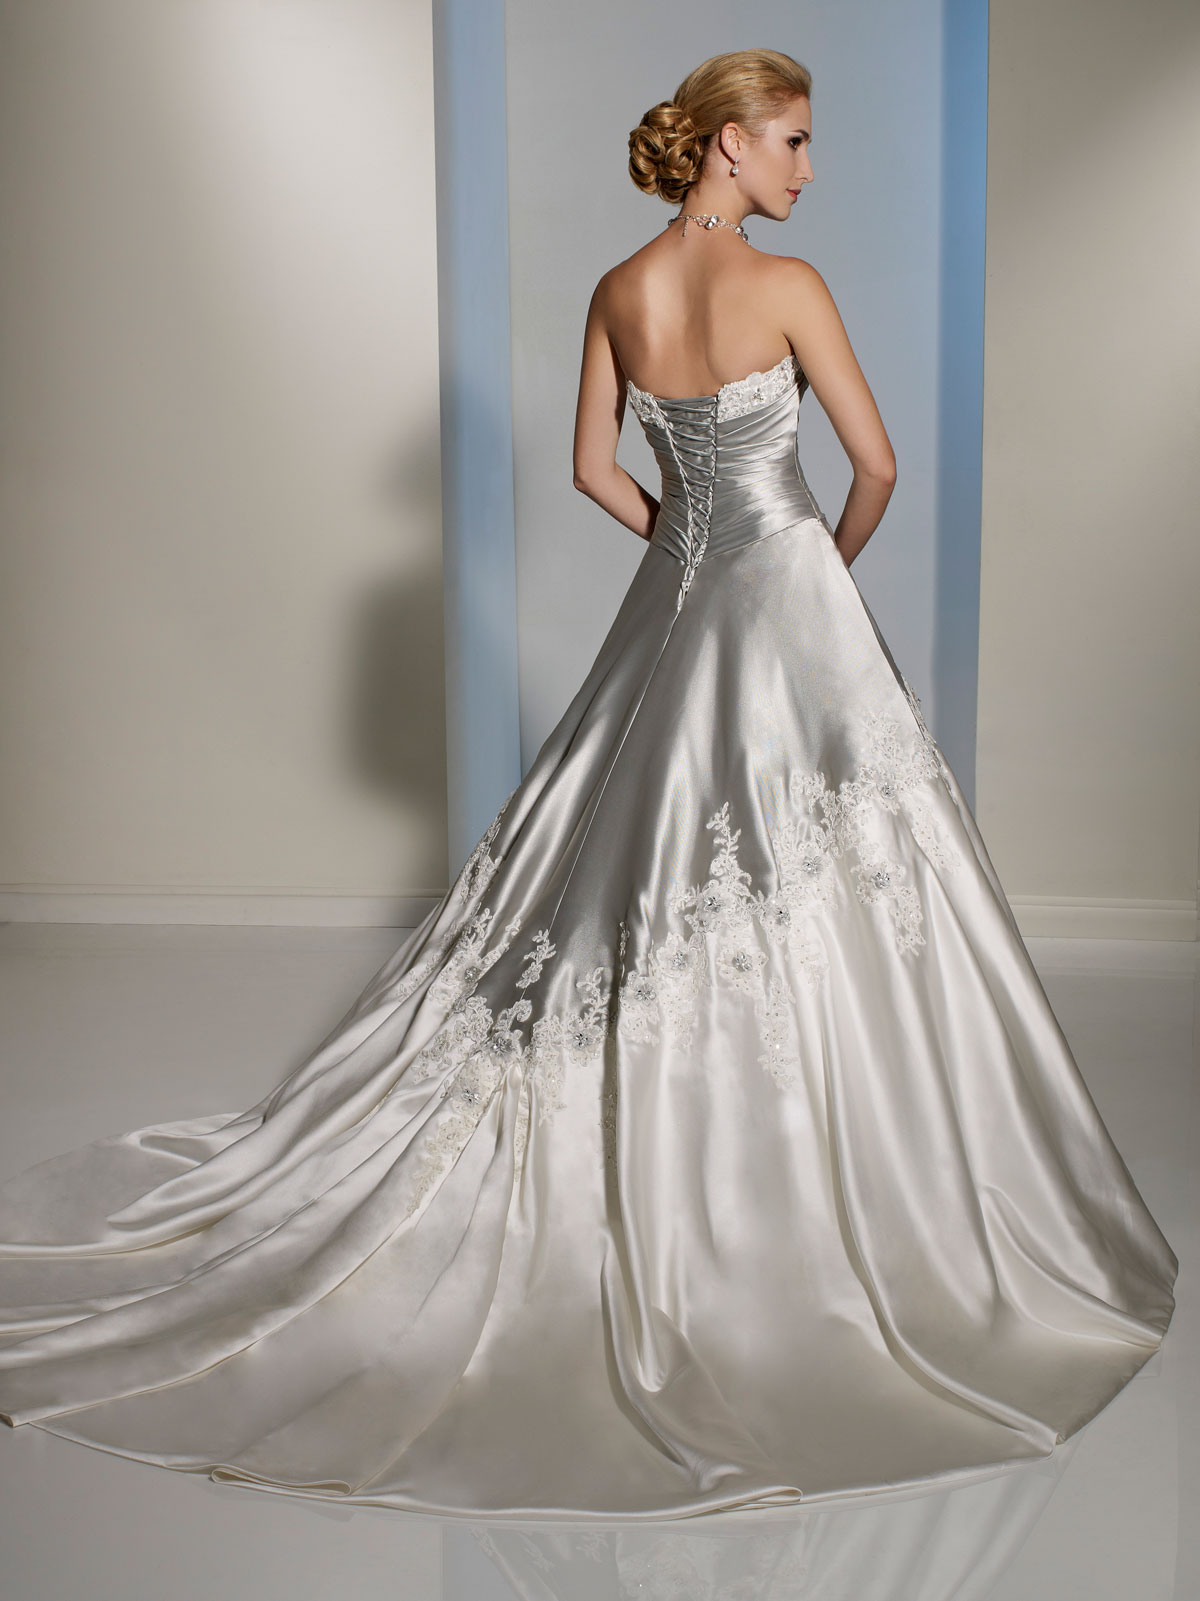 silver and white wedding dresses photo - 1